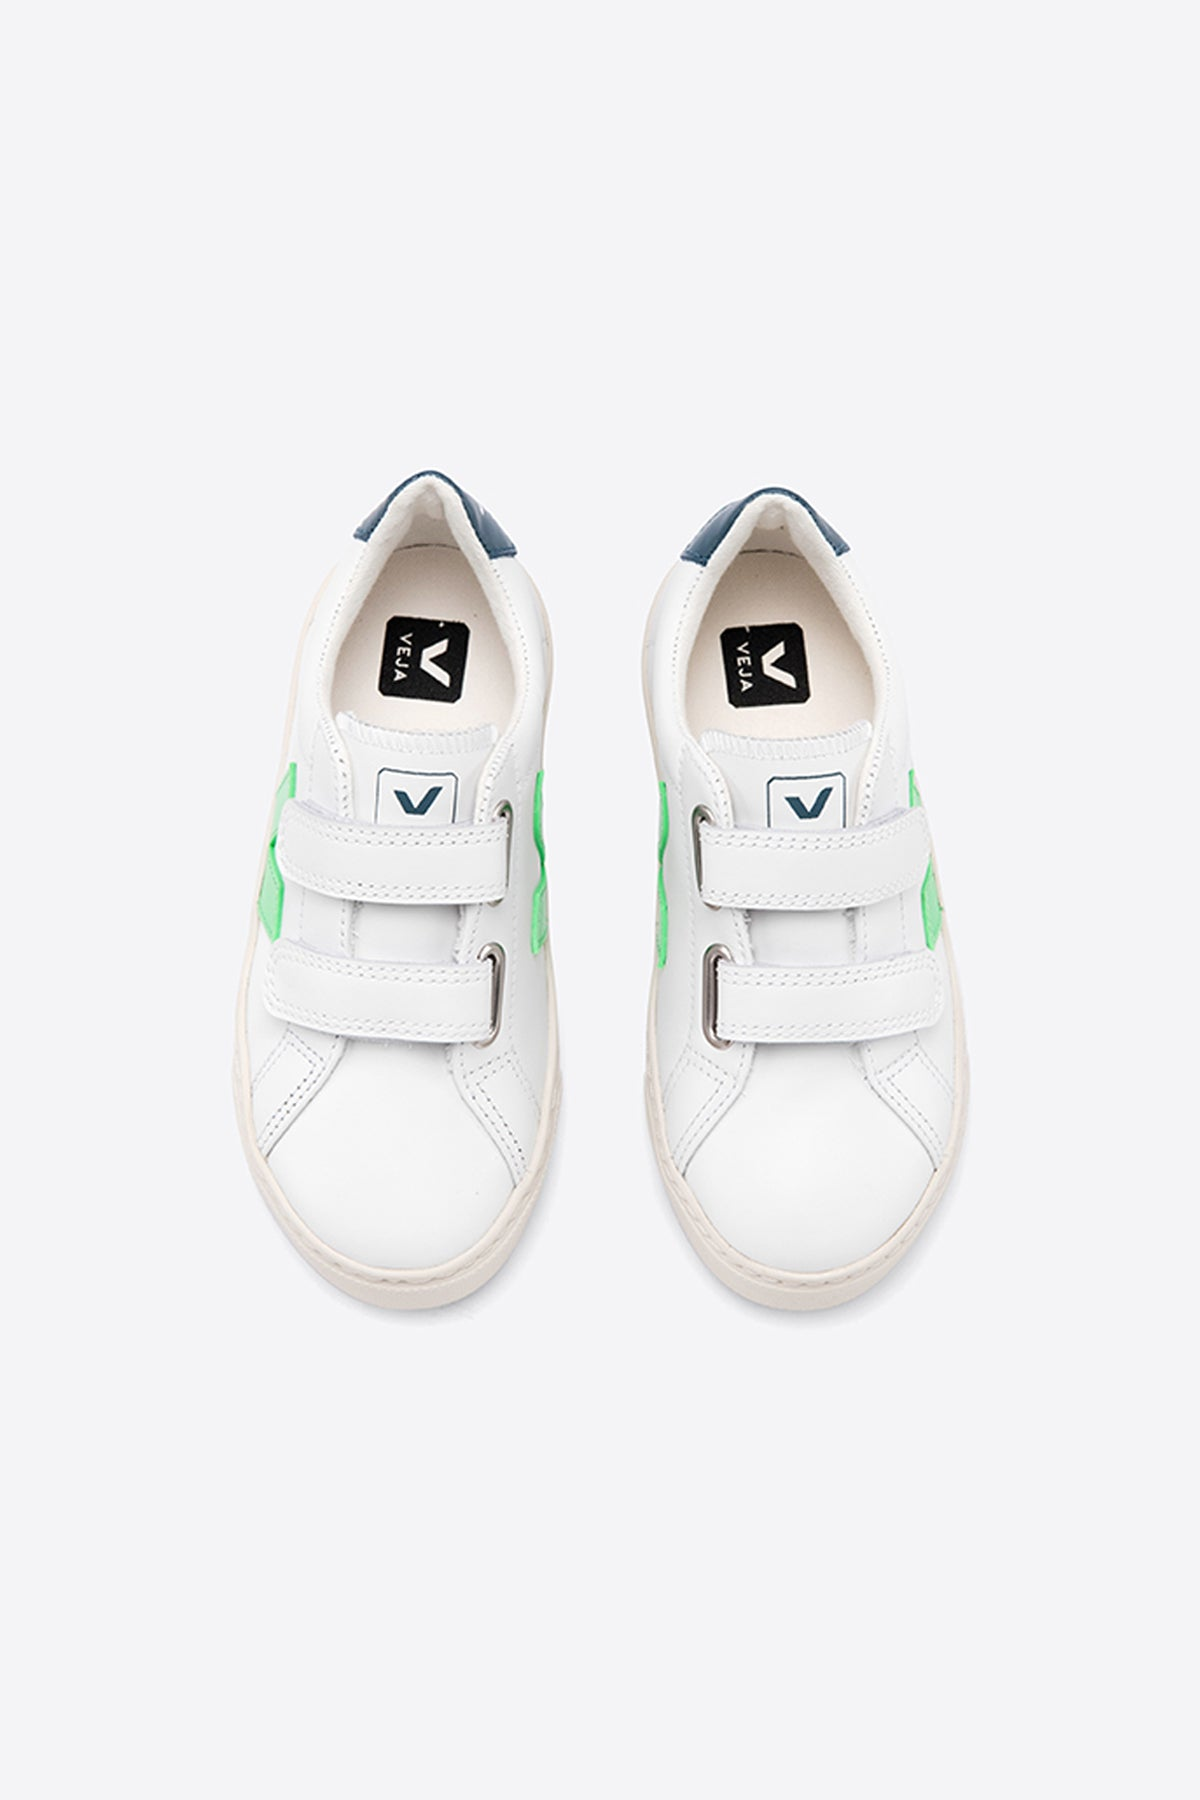 Veja Esplar Kids Shoes - White Absinthe California